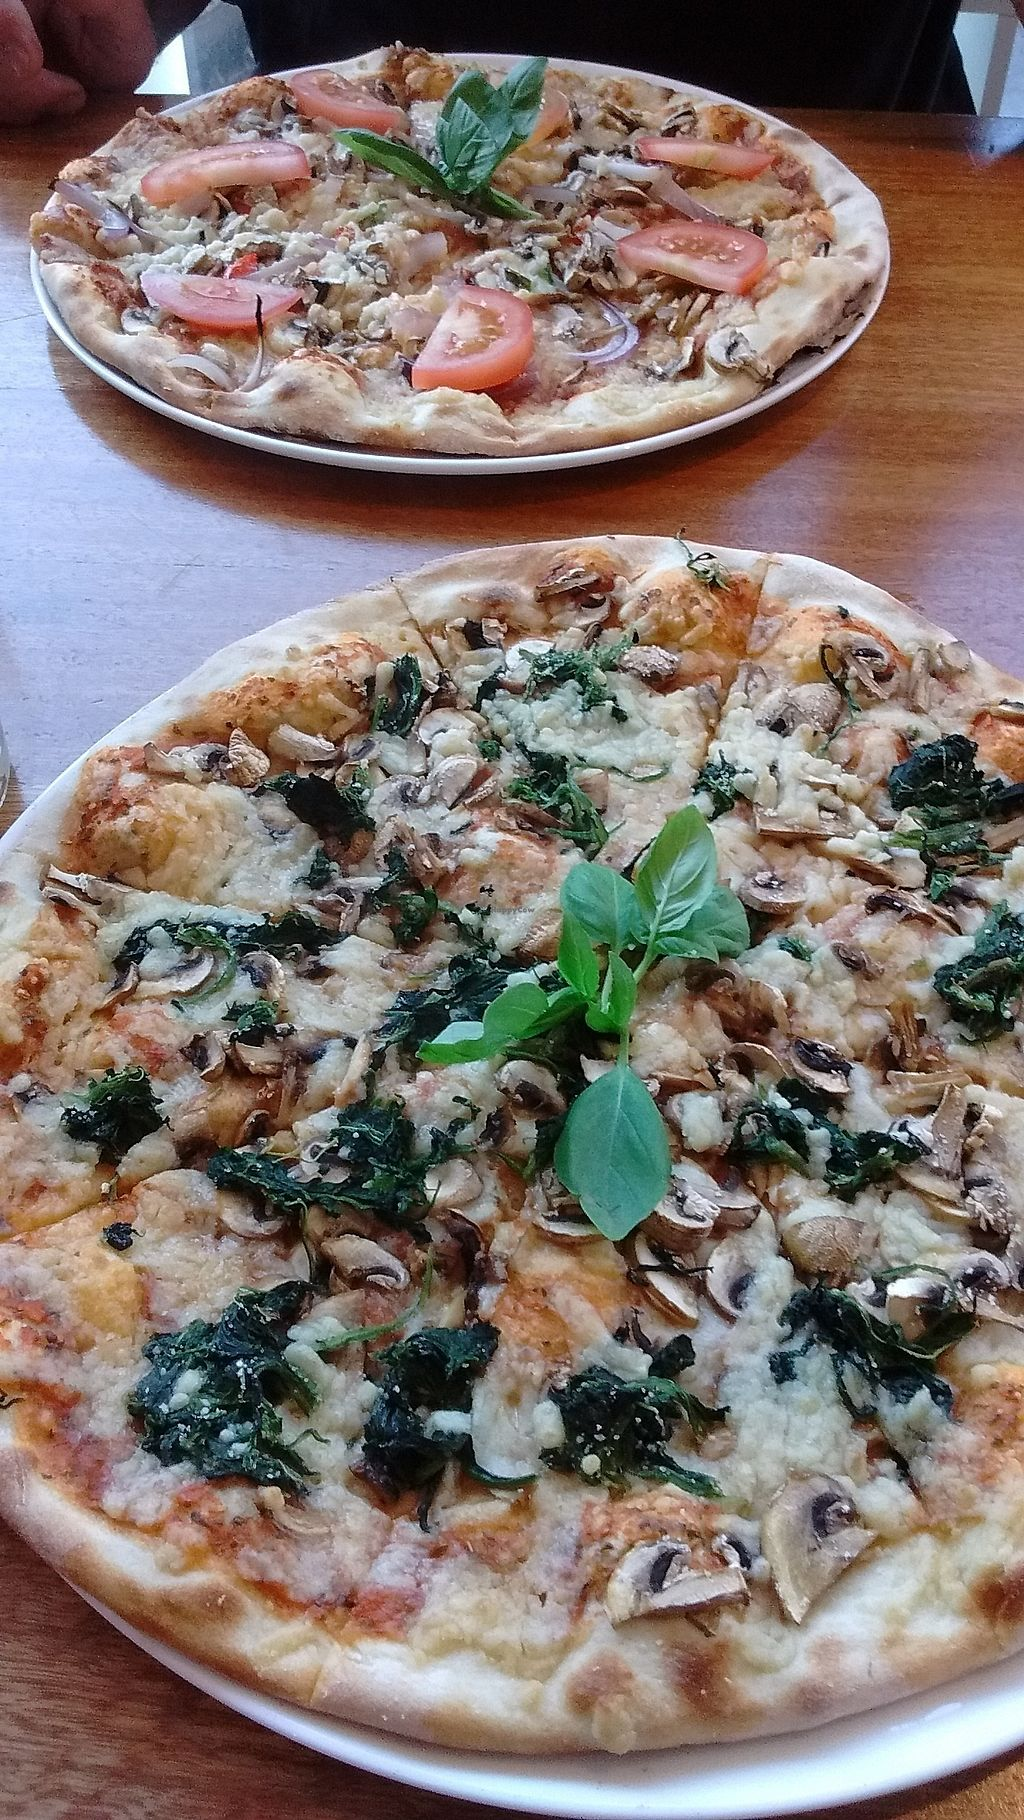 "Photo of Mandala Pizza and Salad Emporium  by <a href=""/members/profile/Coral999"">Coral999</a> <br/>Pizza with vegan mozzarella!  Both were build your own  <br/> July 2, 2017  - <a href='/contact/abuse/image/95288/276080'>Report</a>"